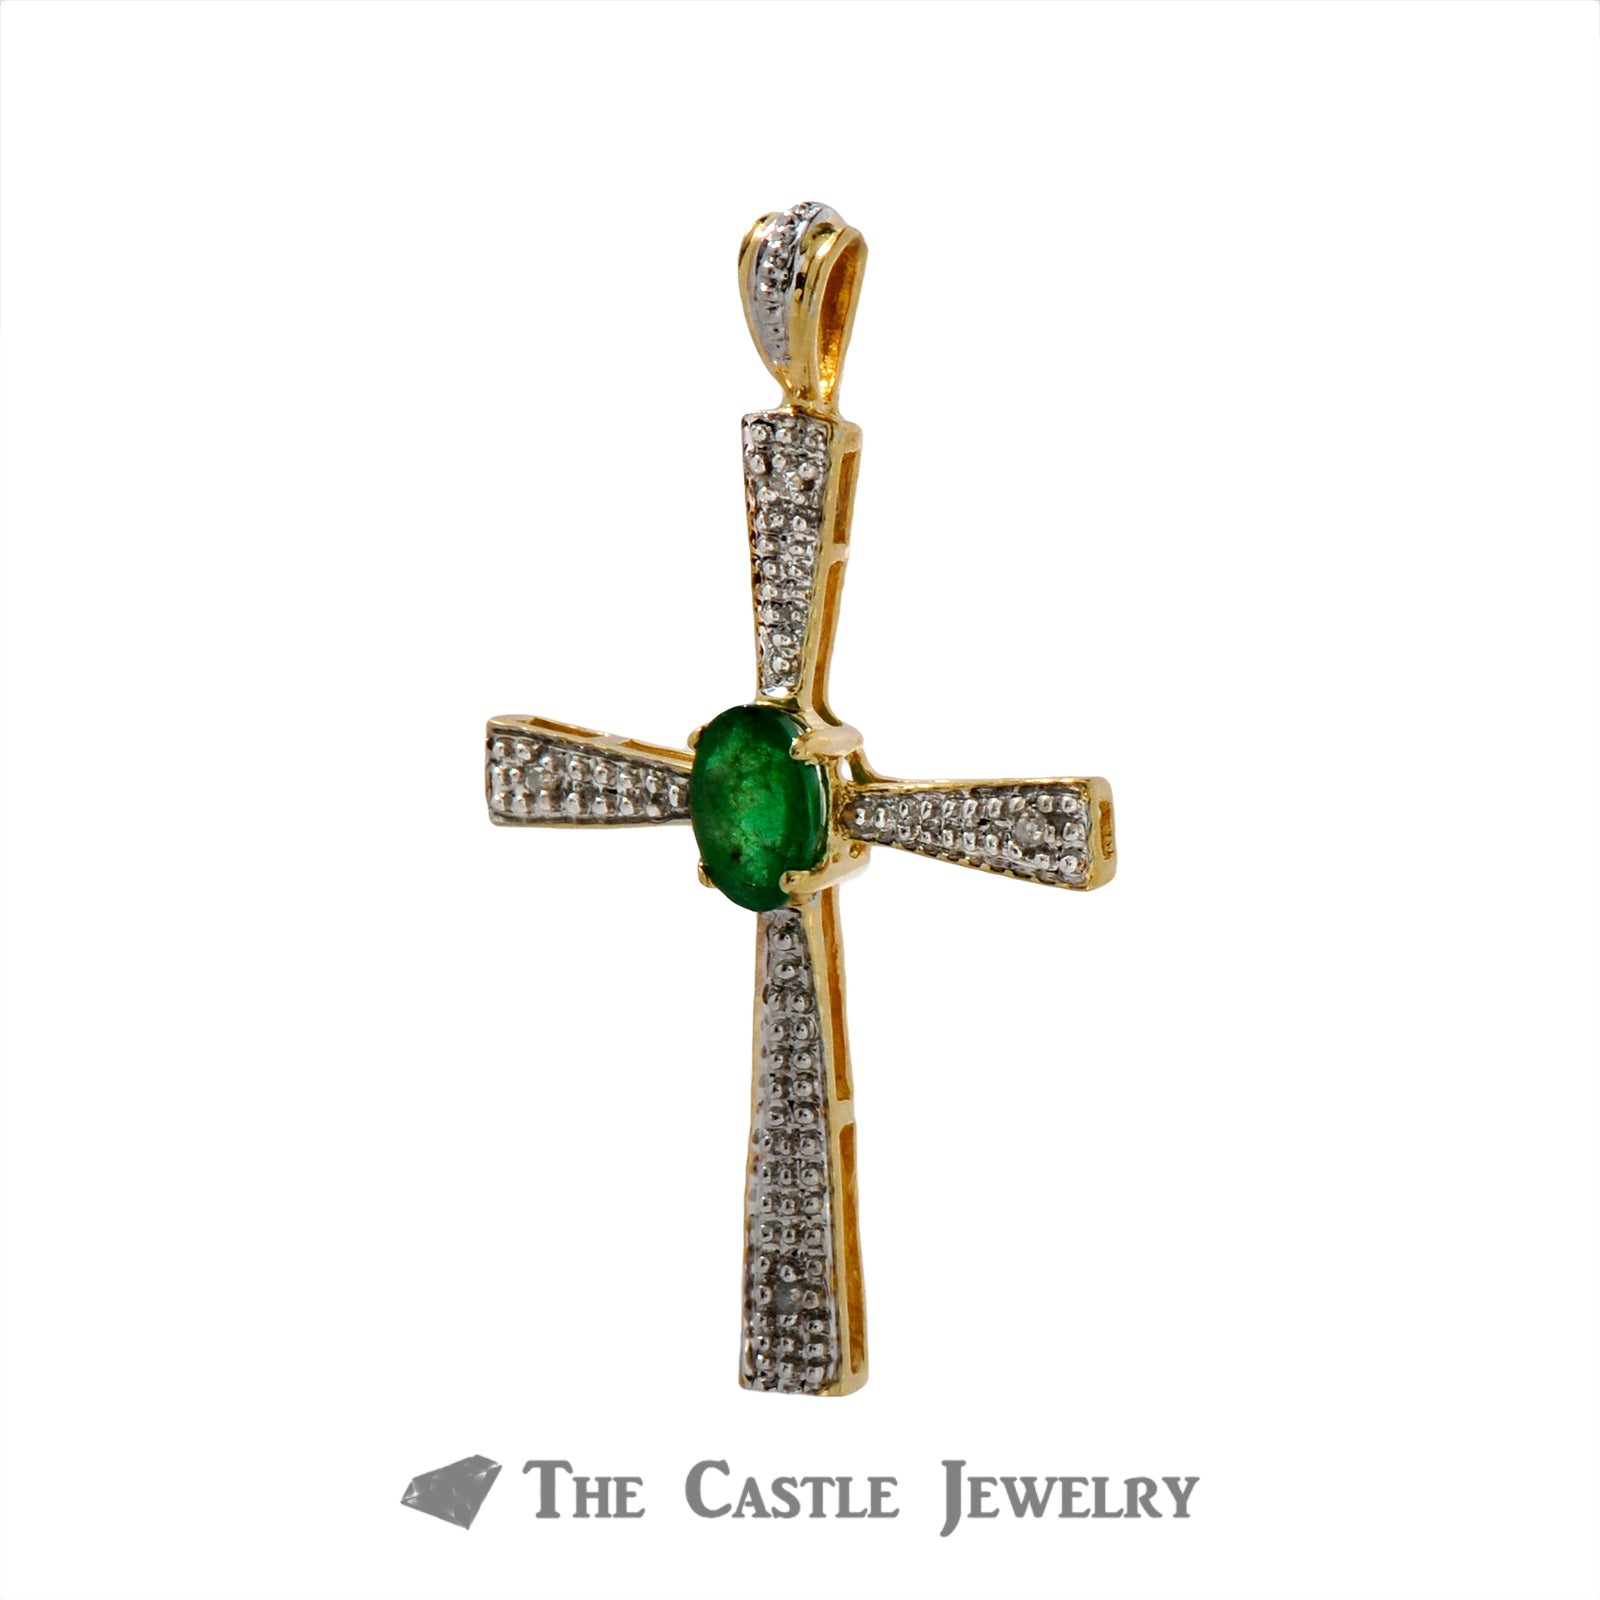 Oval Cut Emerald Cross Pendant with Diamond Accents Crafted in 14k Yellow Gold-1